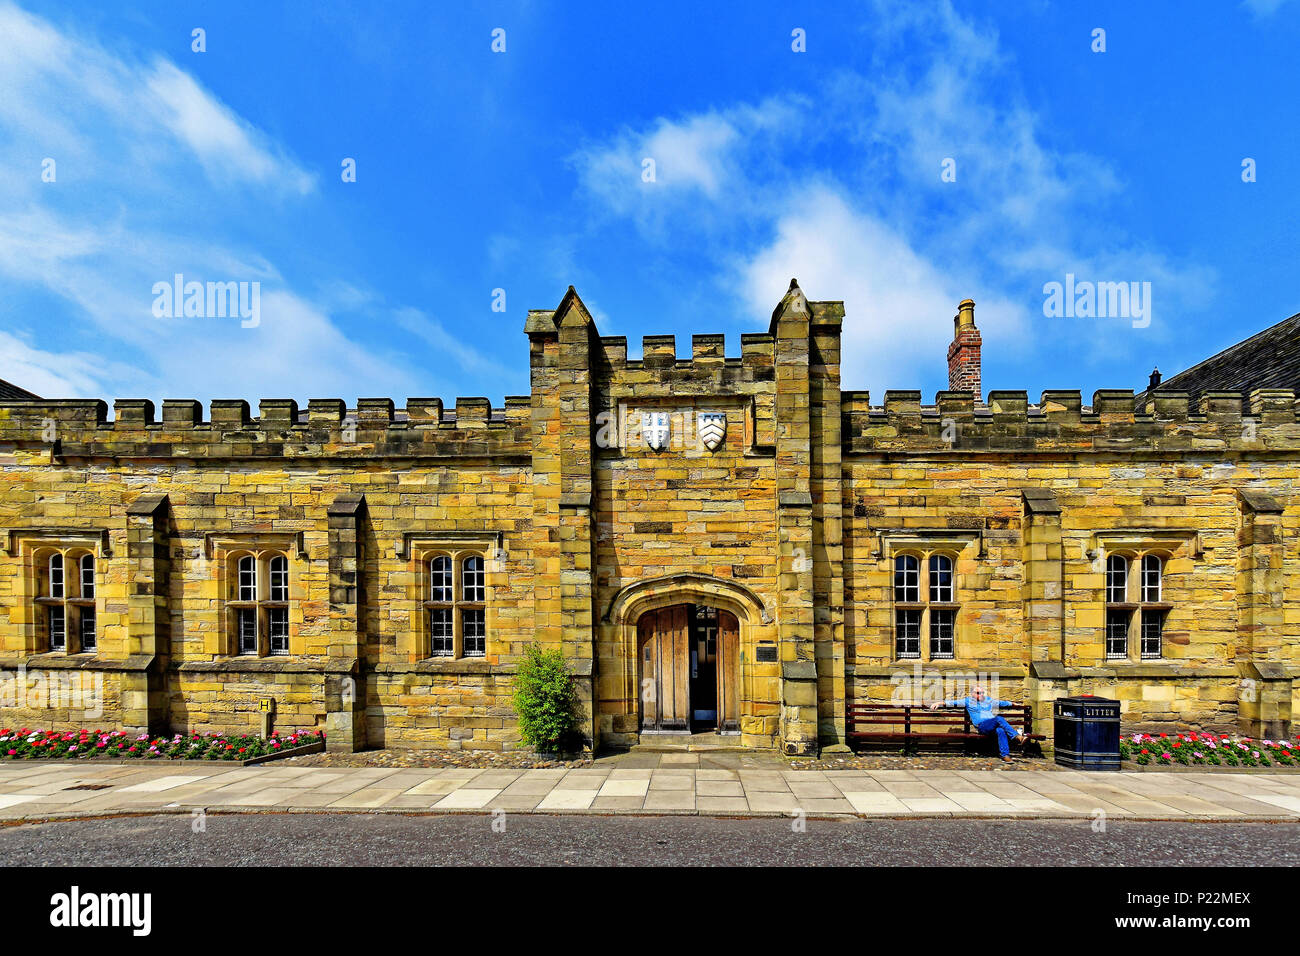 Durham Cathedral University Library Entrance Stock Photo 207813730